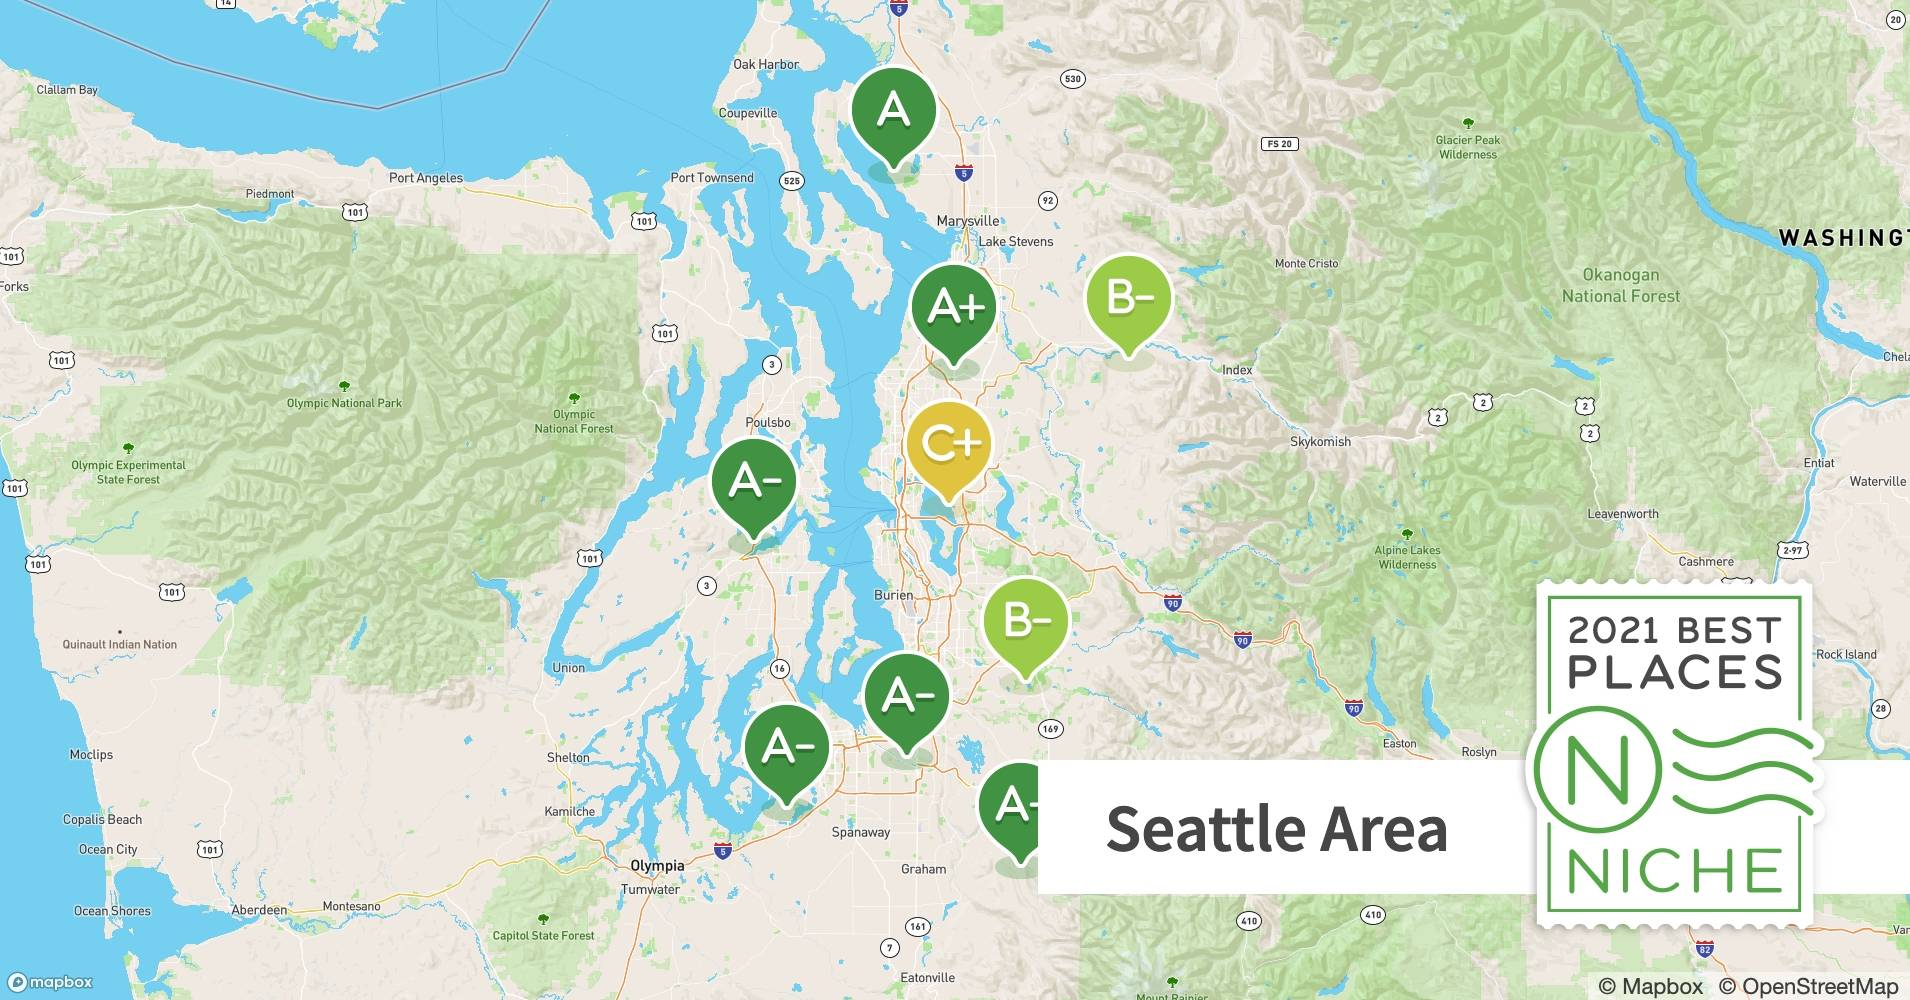 2021 Best Seattle Area Suburbs To Live Niche